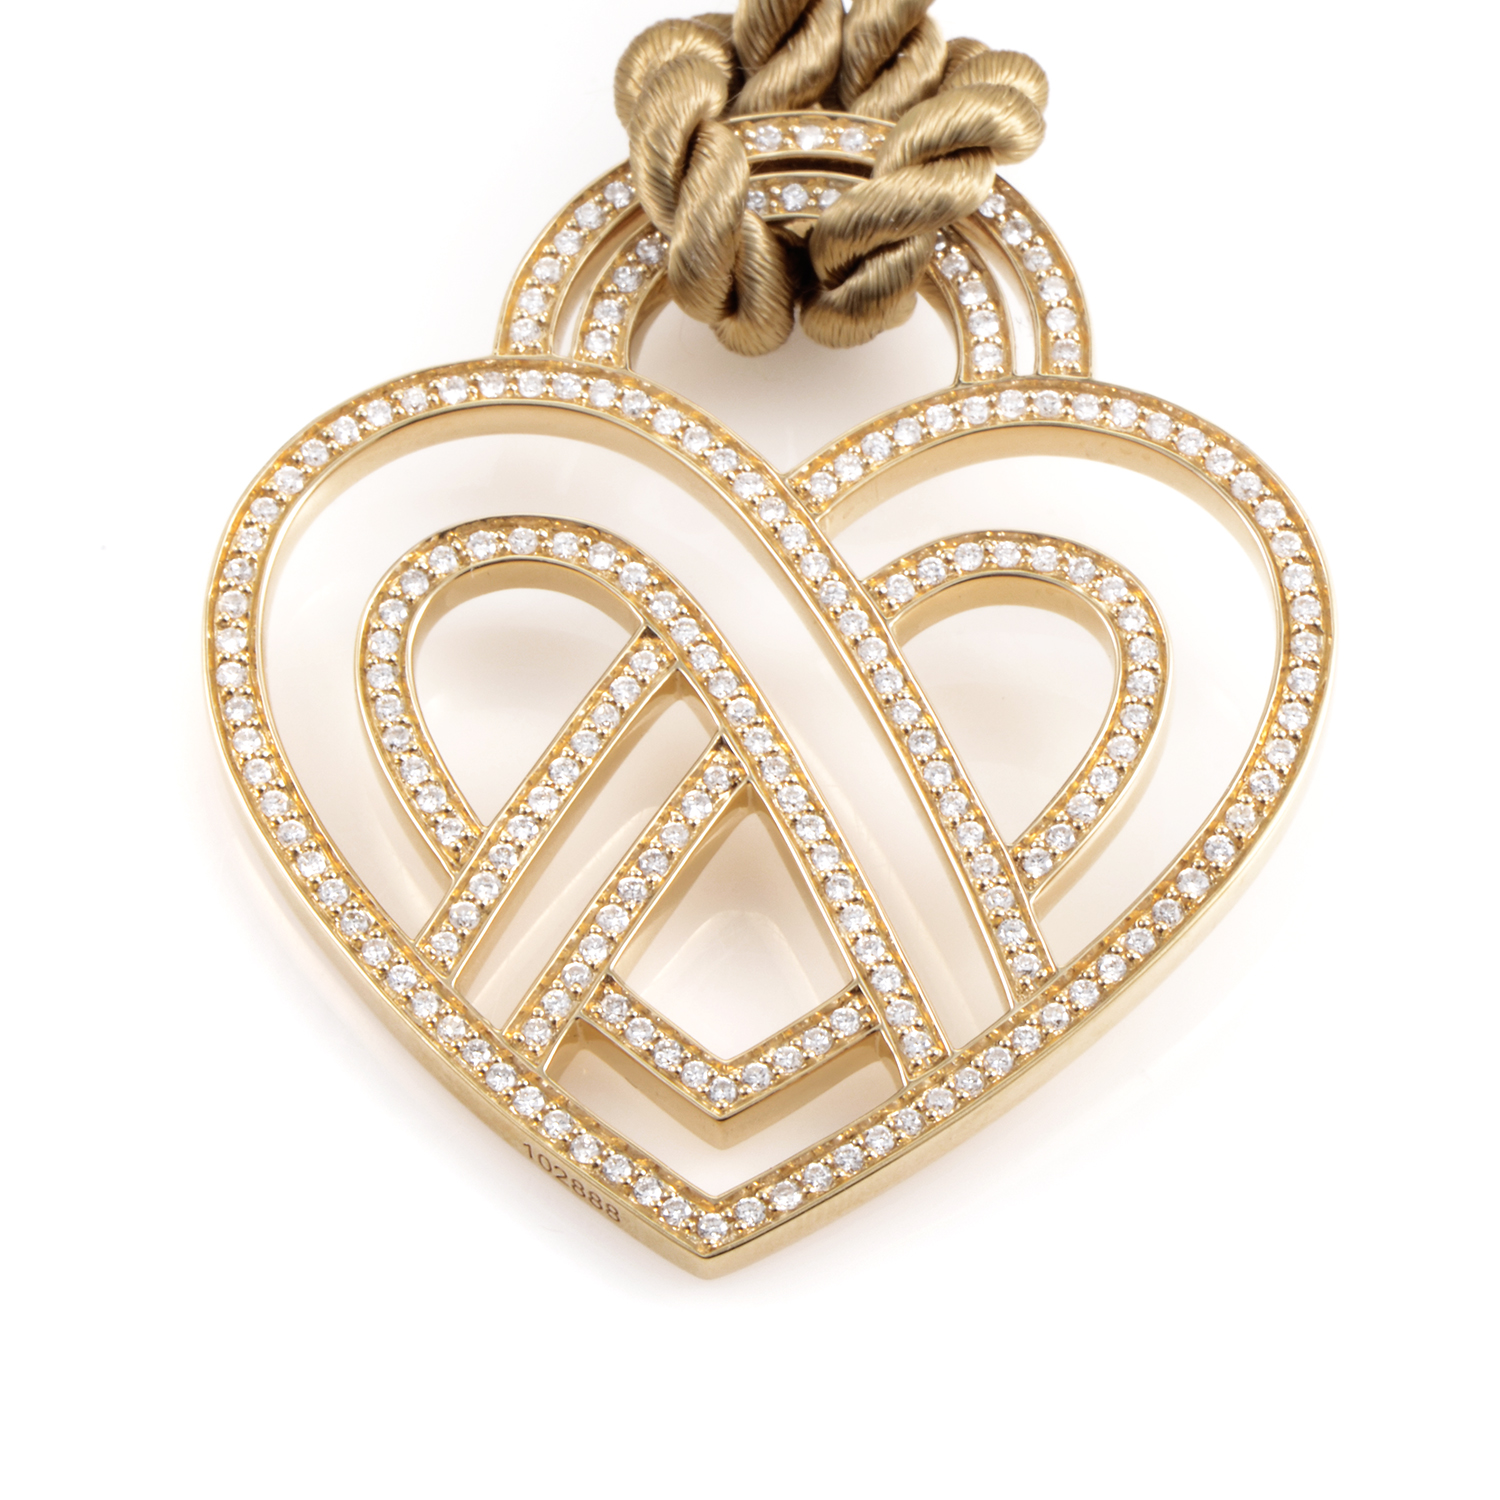 Wire Heart Framework 18K Yellow Gold Diamond Pendant & Cord Necklace